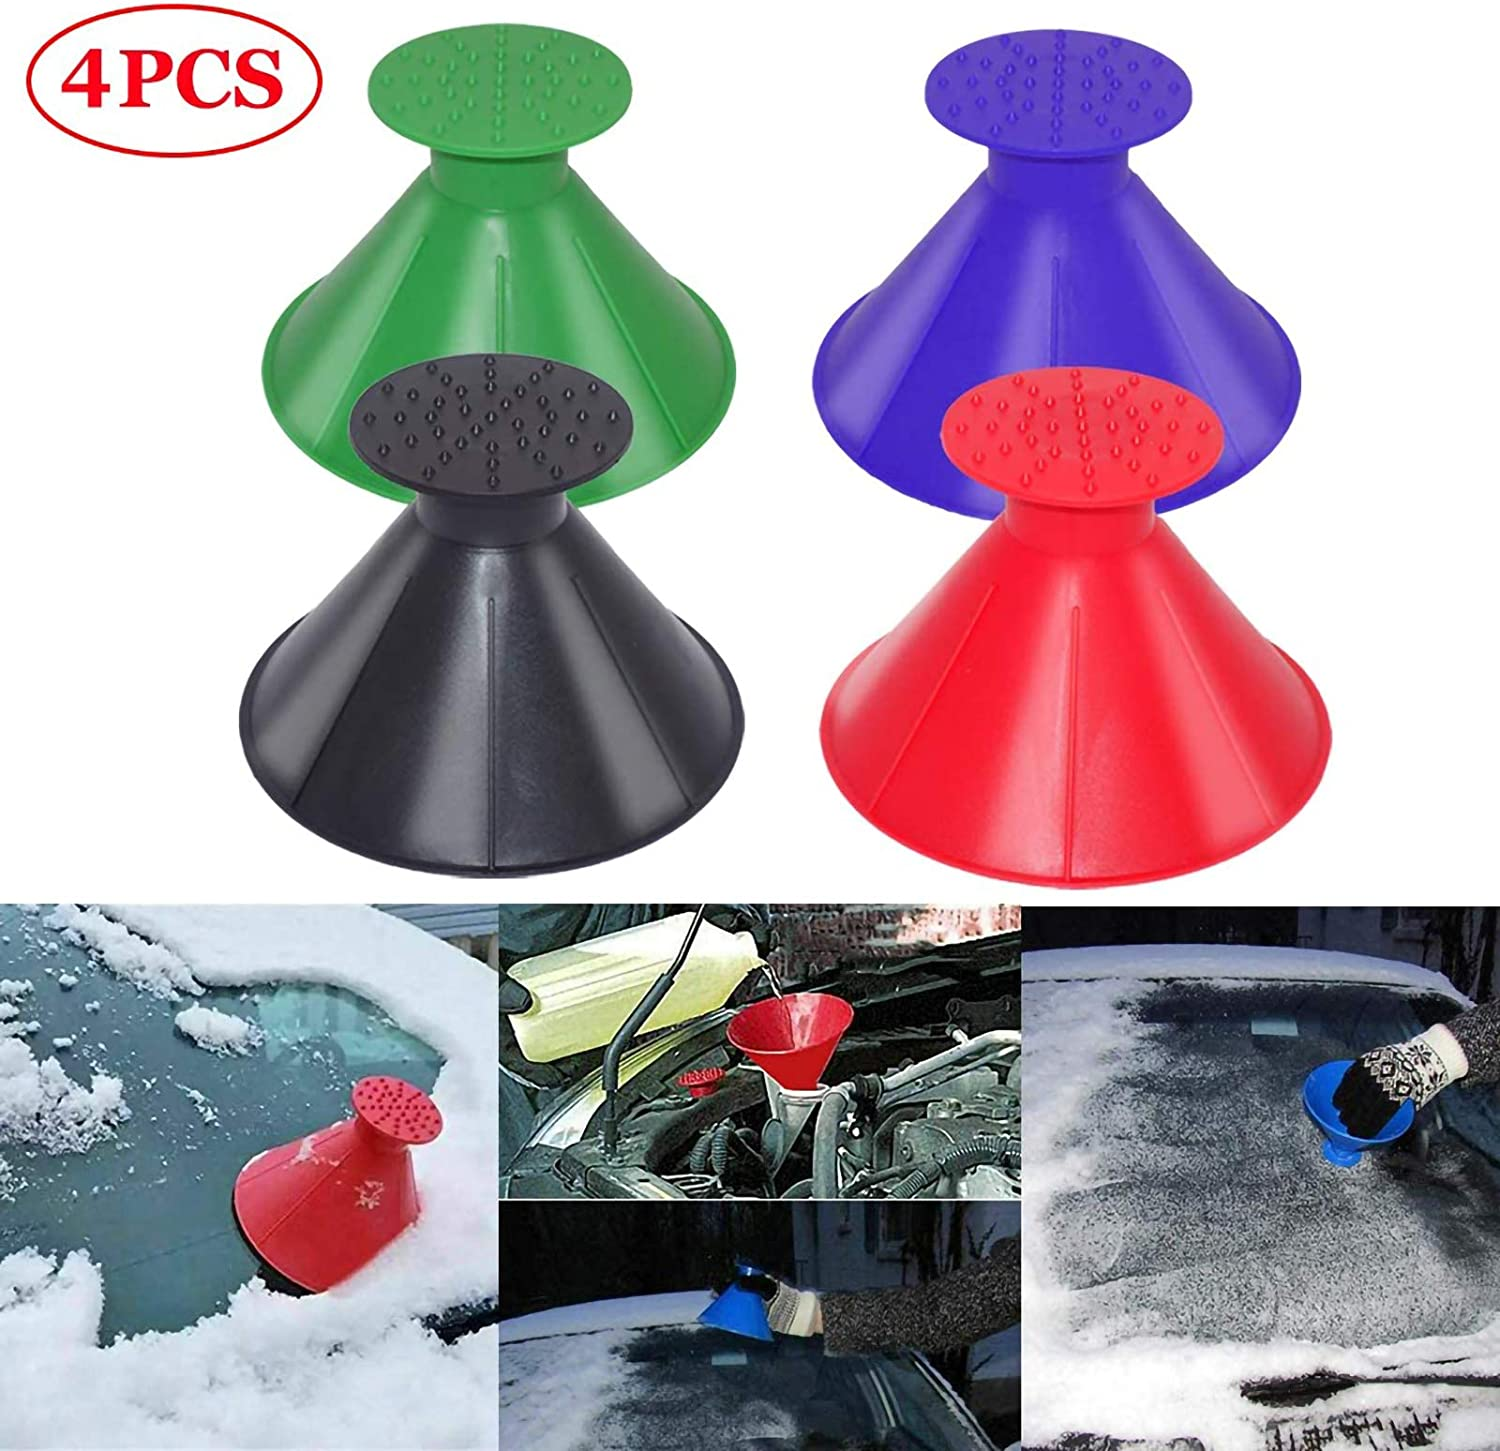 reakoo Ice Scraper for Car Windscreen Car Ice Scraper Handle Ice Snow Frost Scraper for Cars Use in Most Winter Conditions 1PCS Red